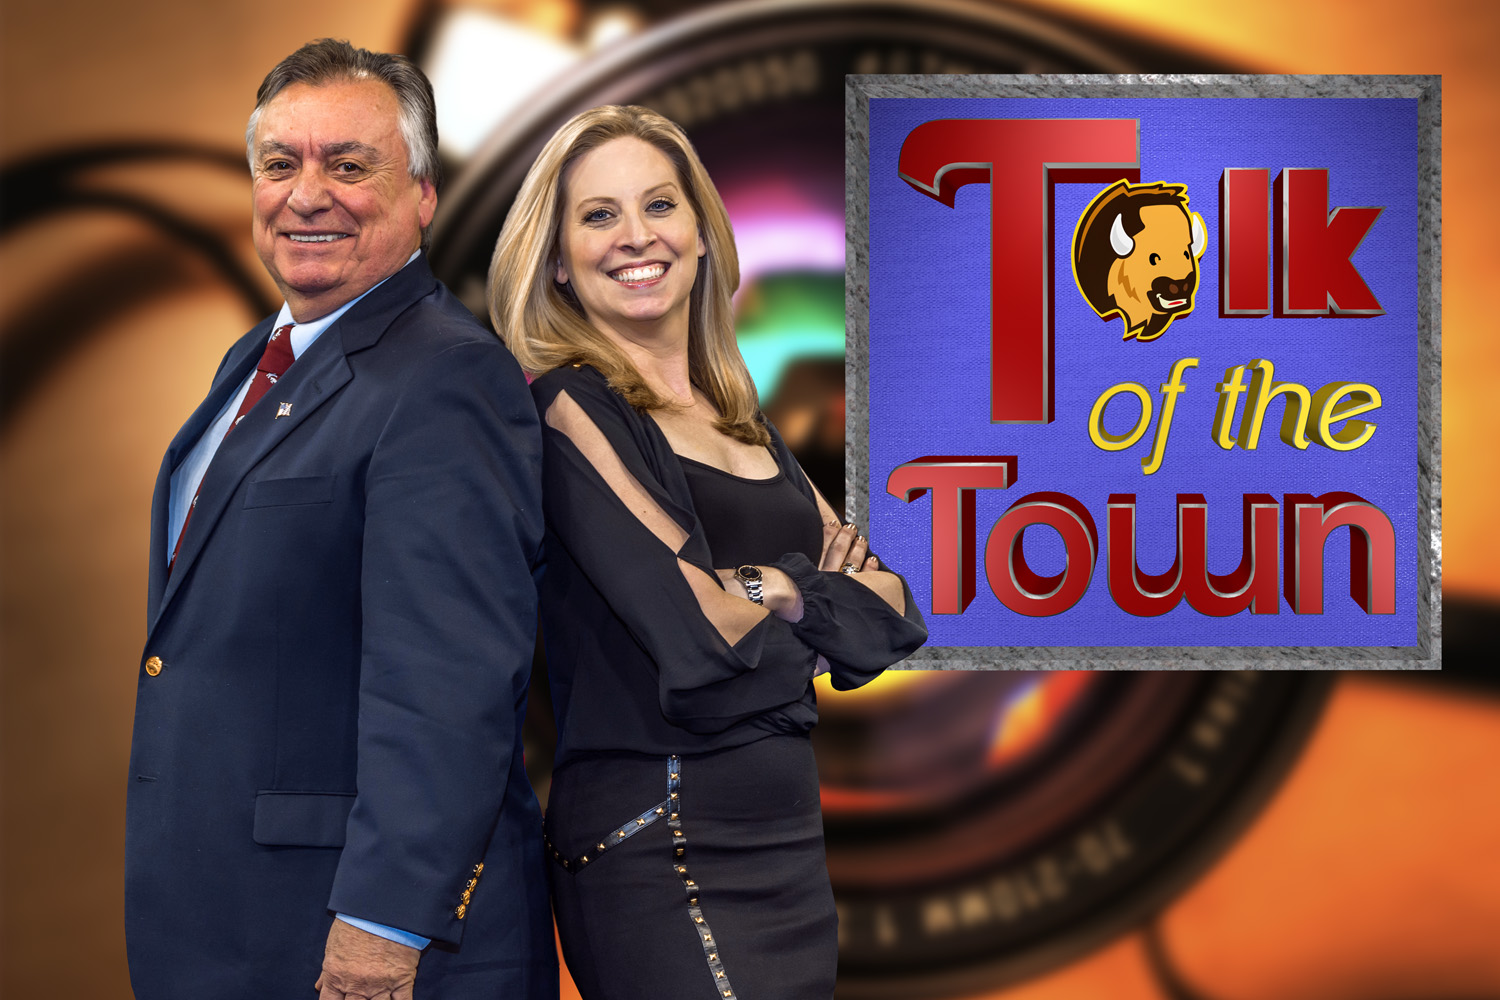 Talk of the Town Phil and Kim back to back with Logo for print